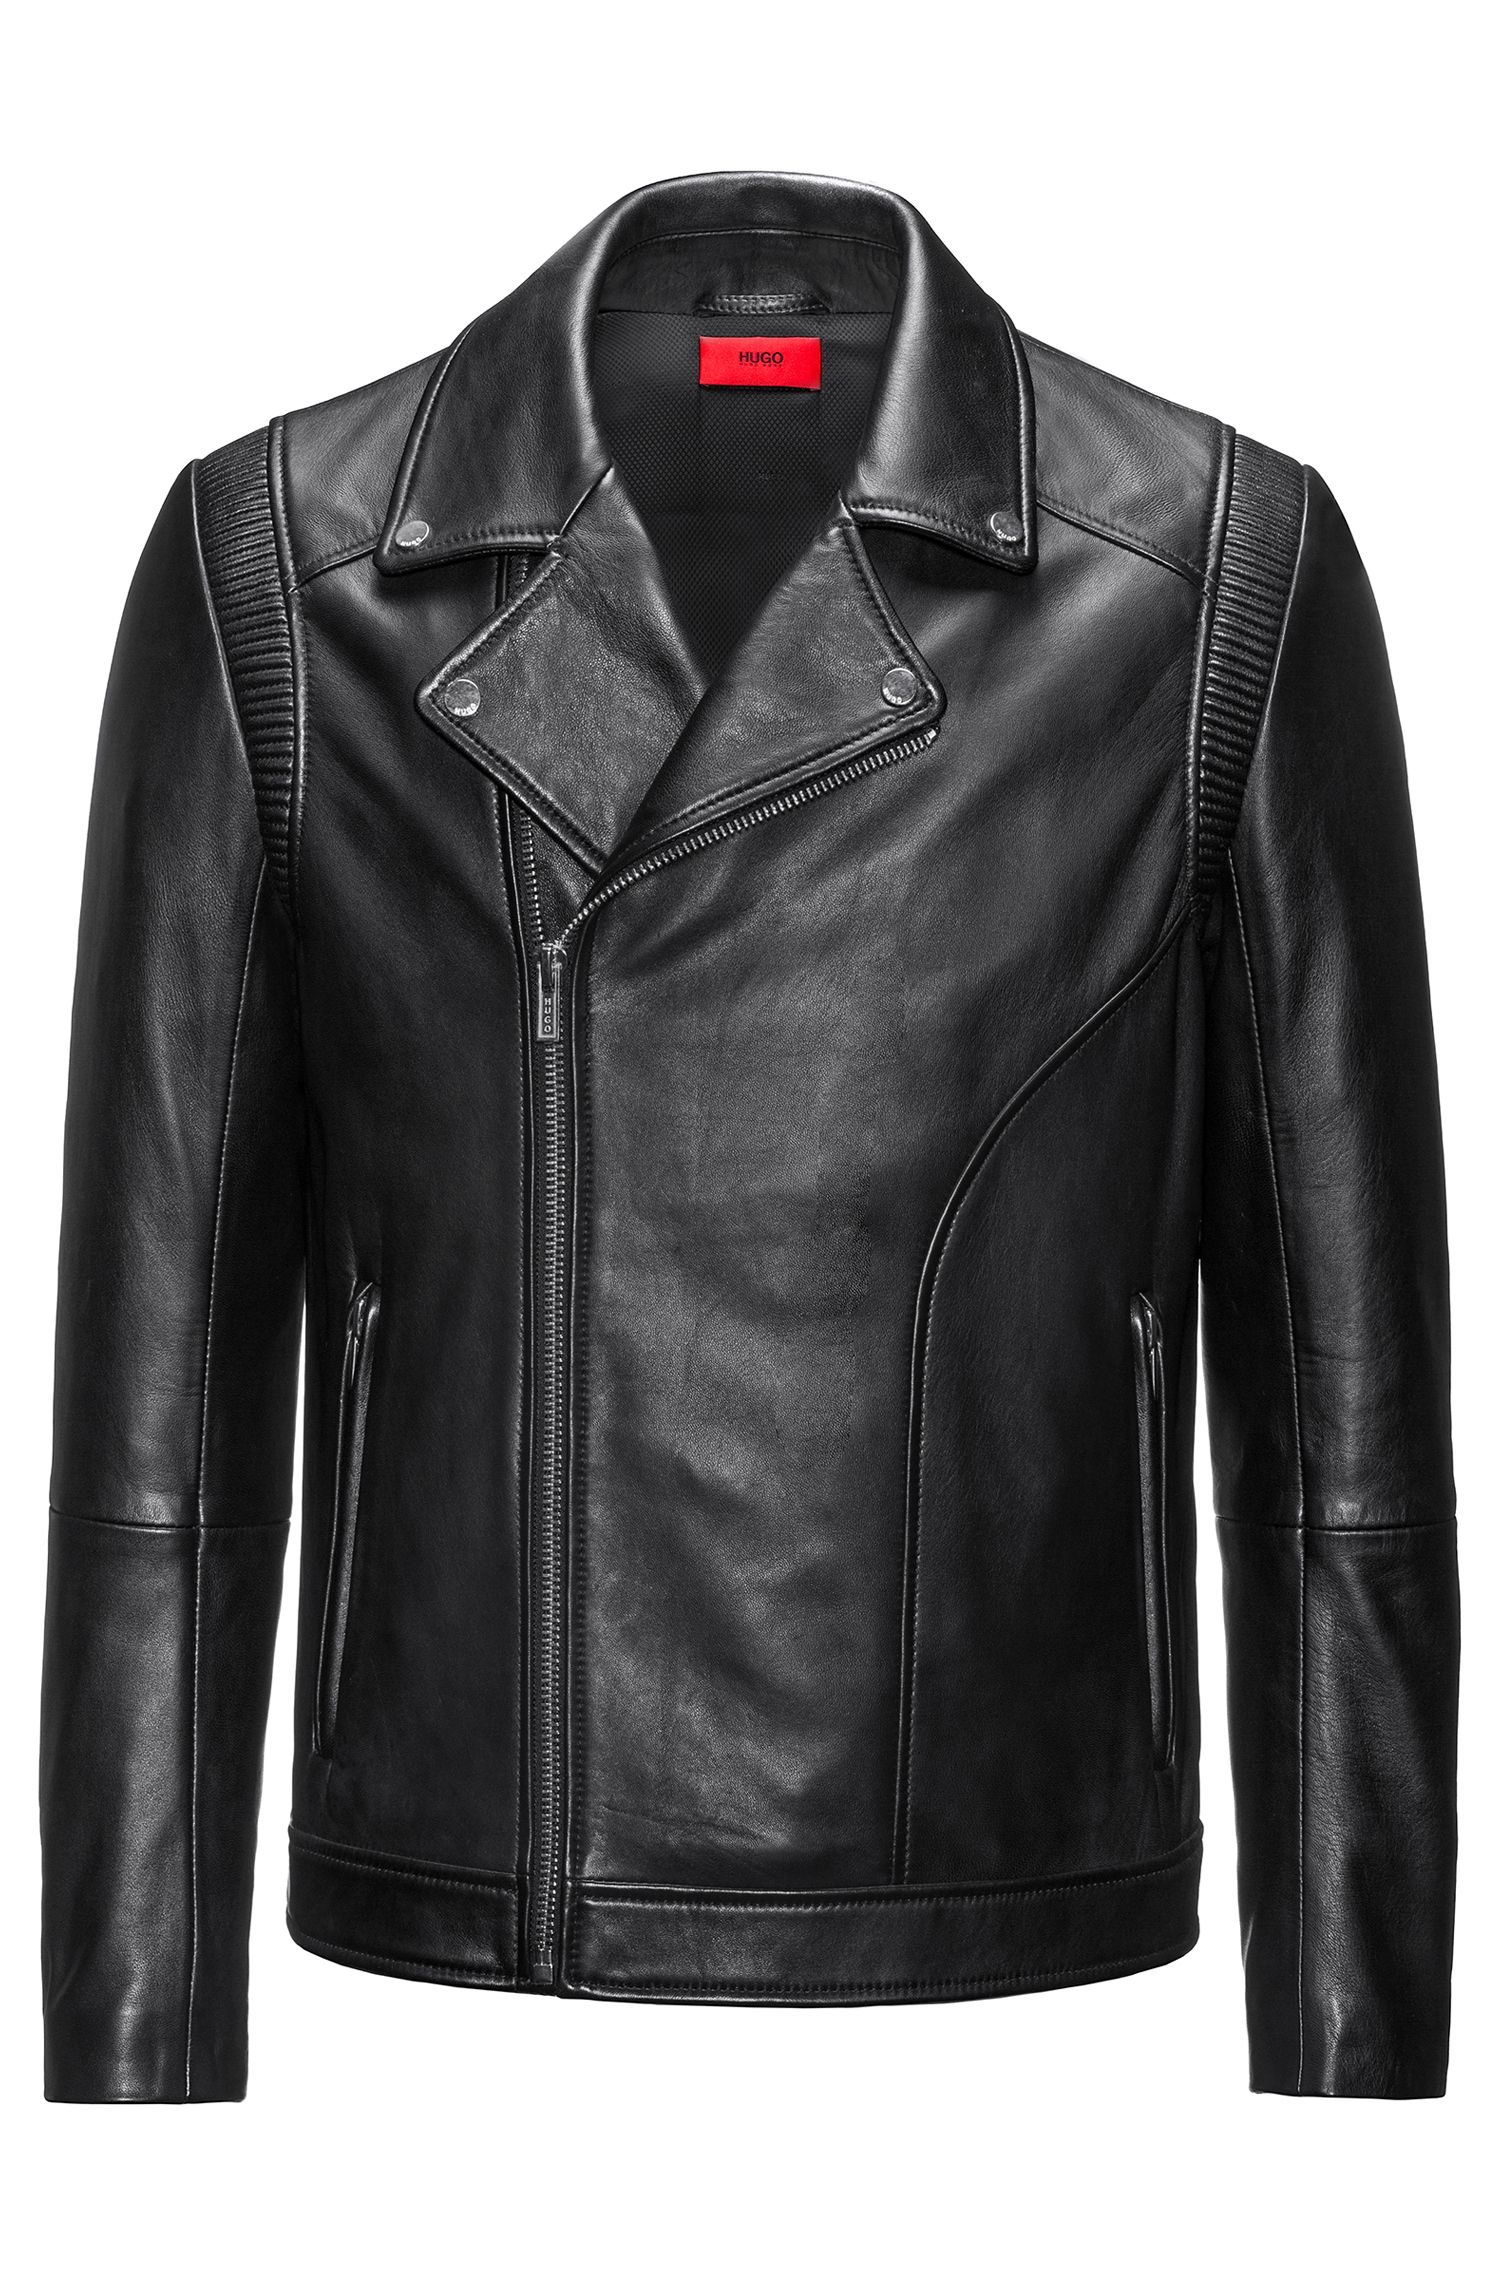 Giubbotto biker slim fit in pelle nappa